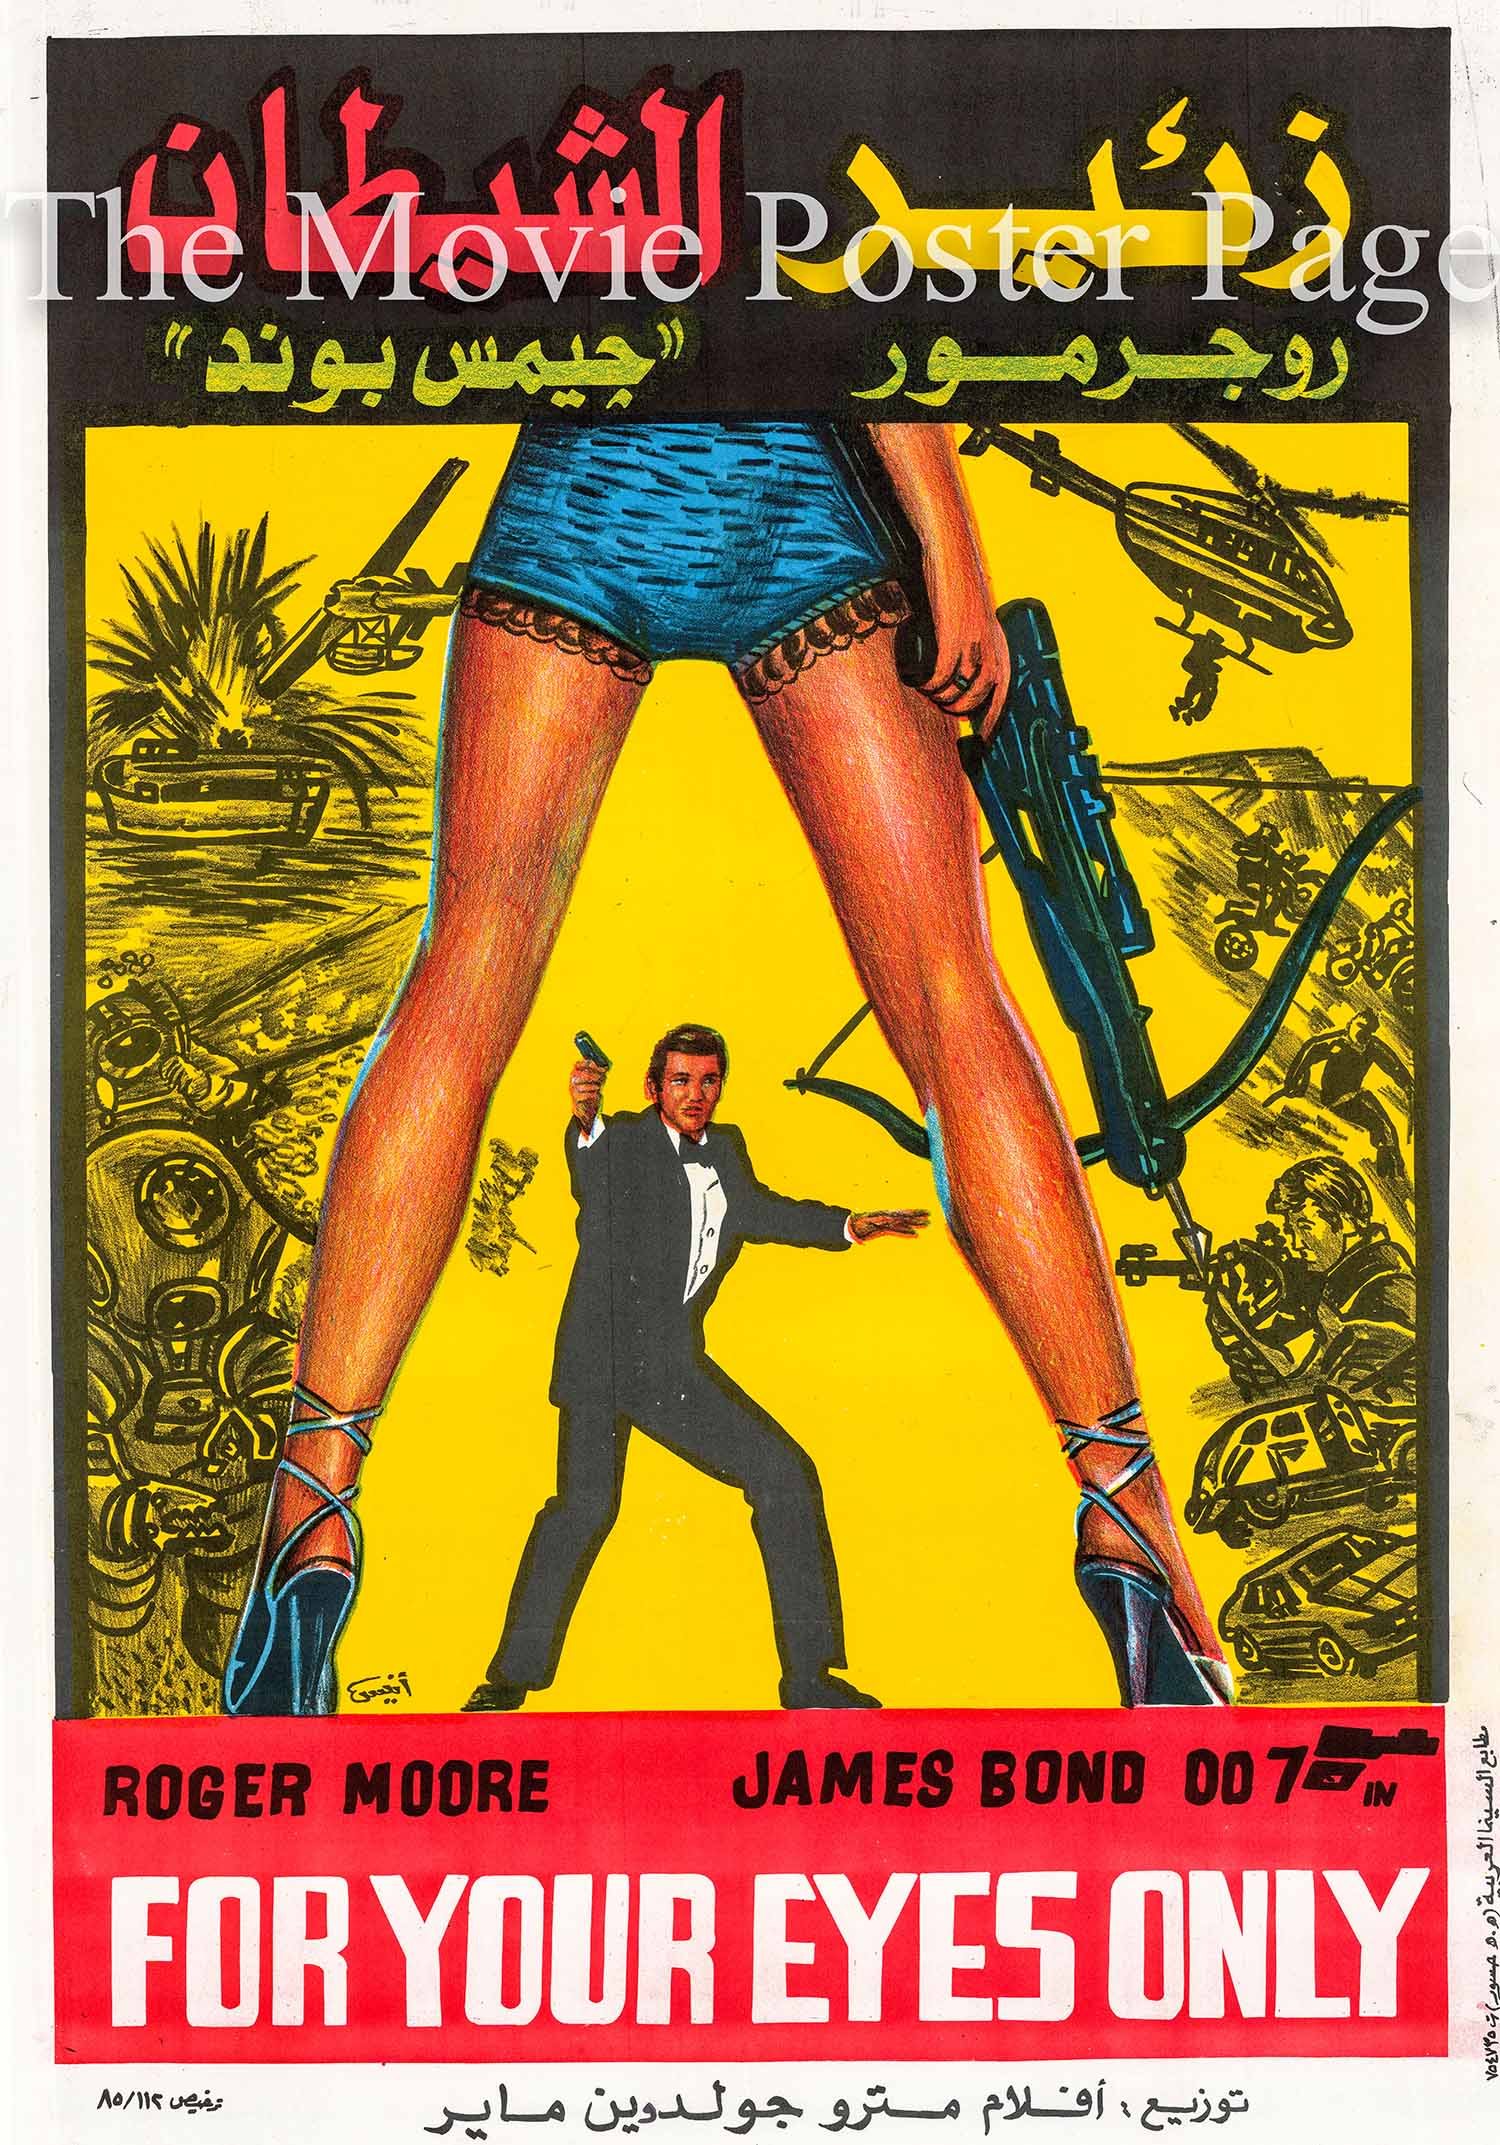 Pictured is an Egyptian promotional poster for the 1981 John Glen film For Your Eyes Only starring Roger Moore as James Bond.